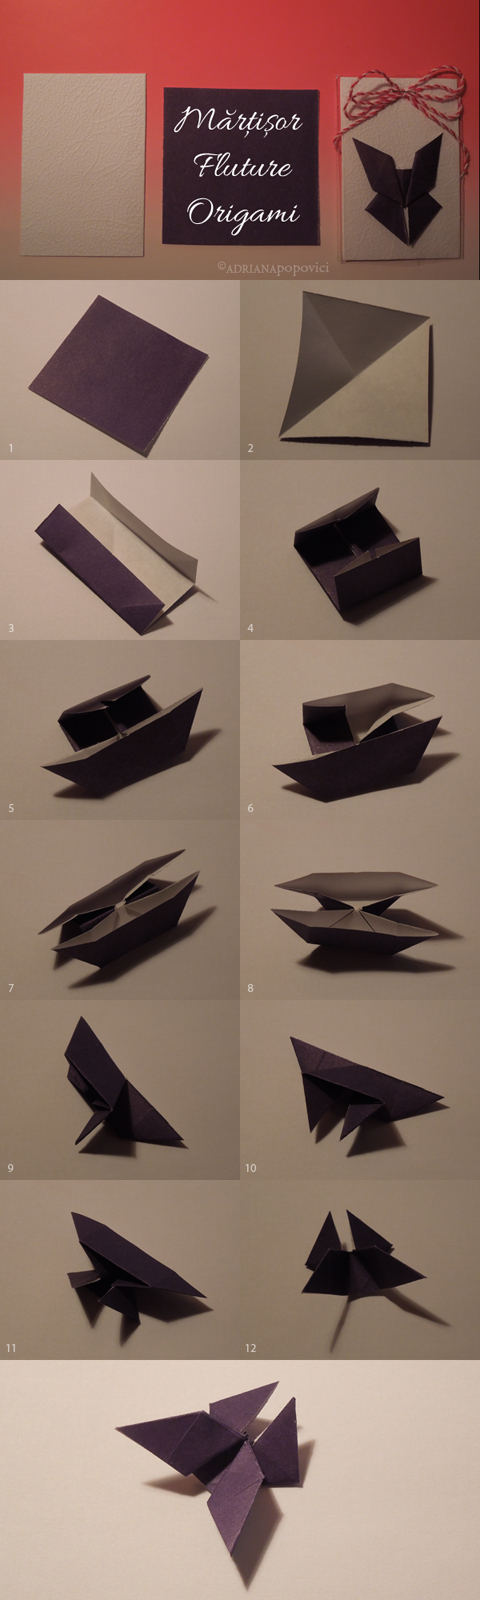 Tutorial fluture origami